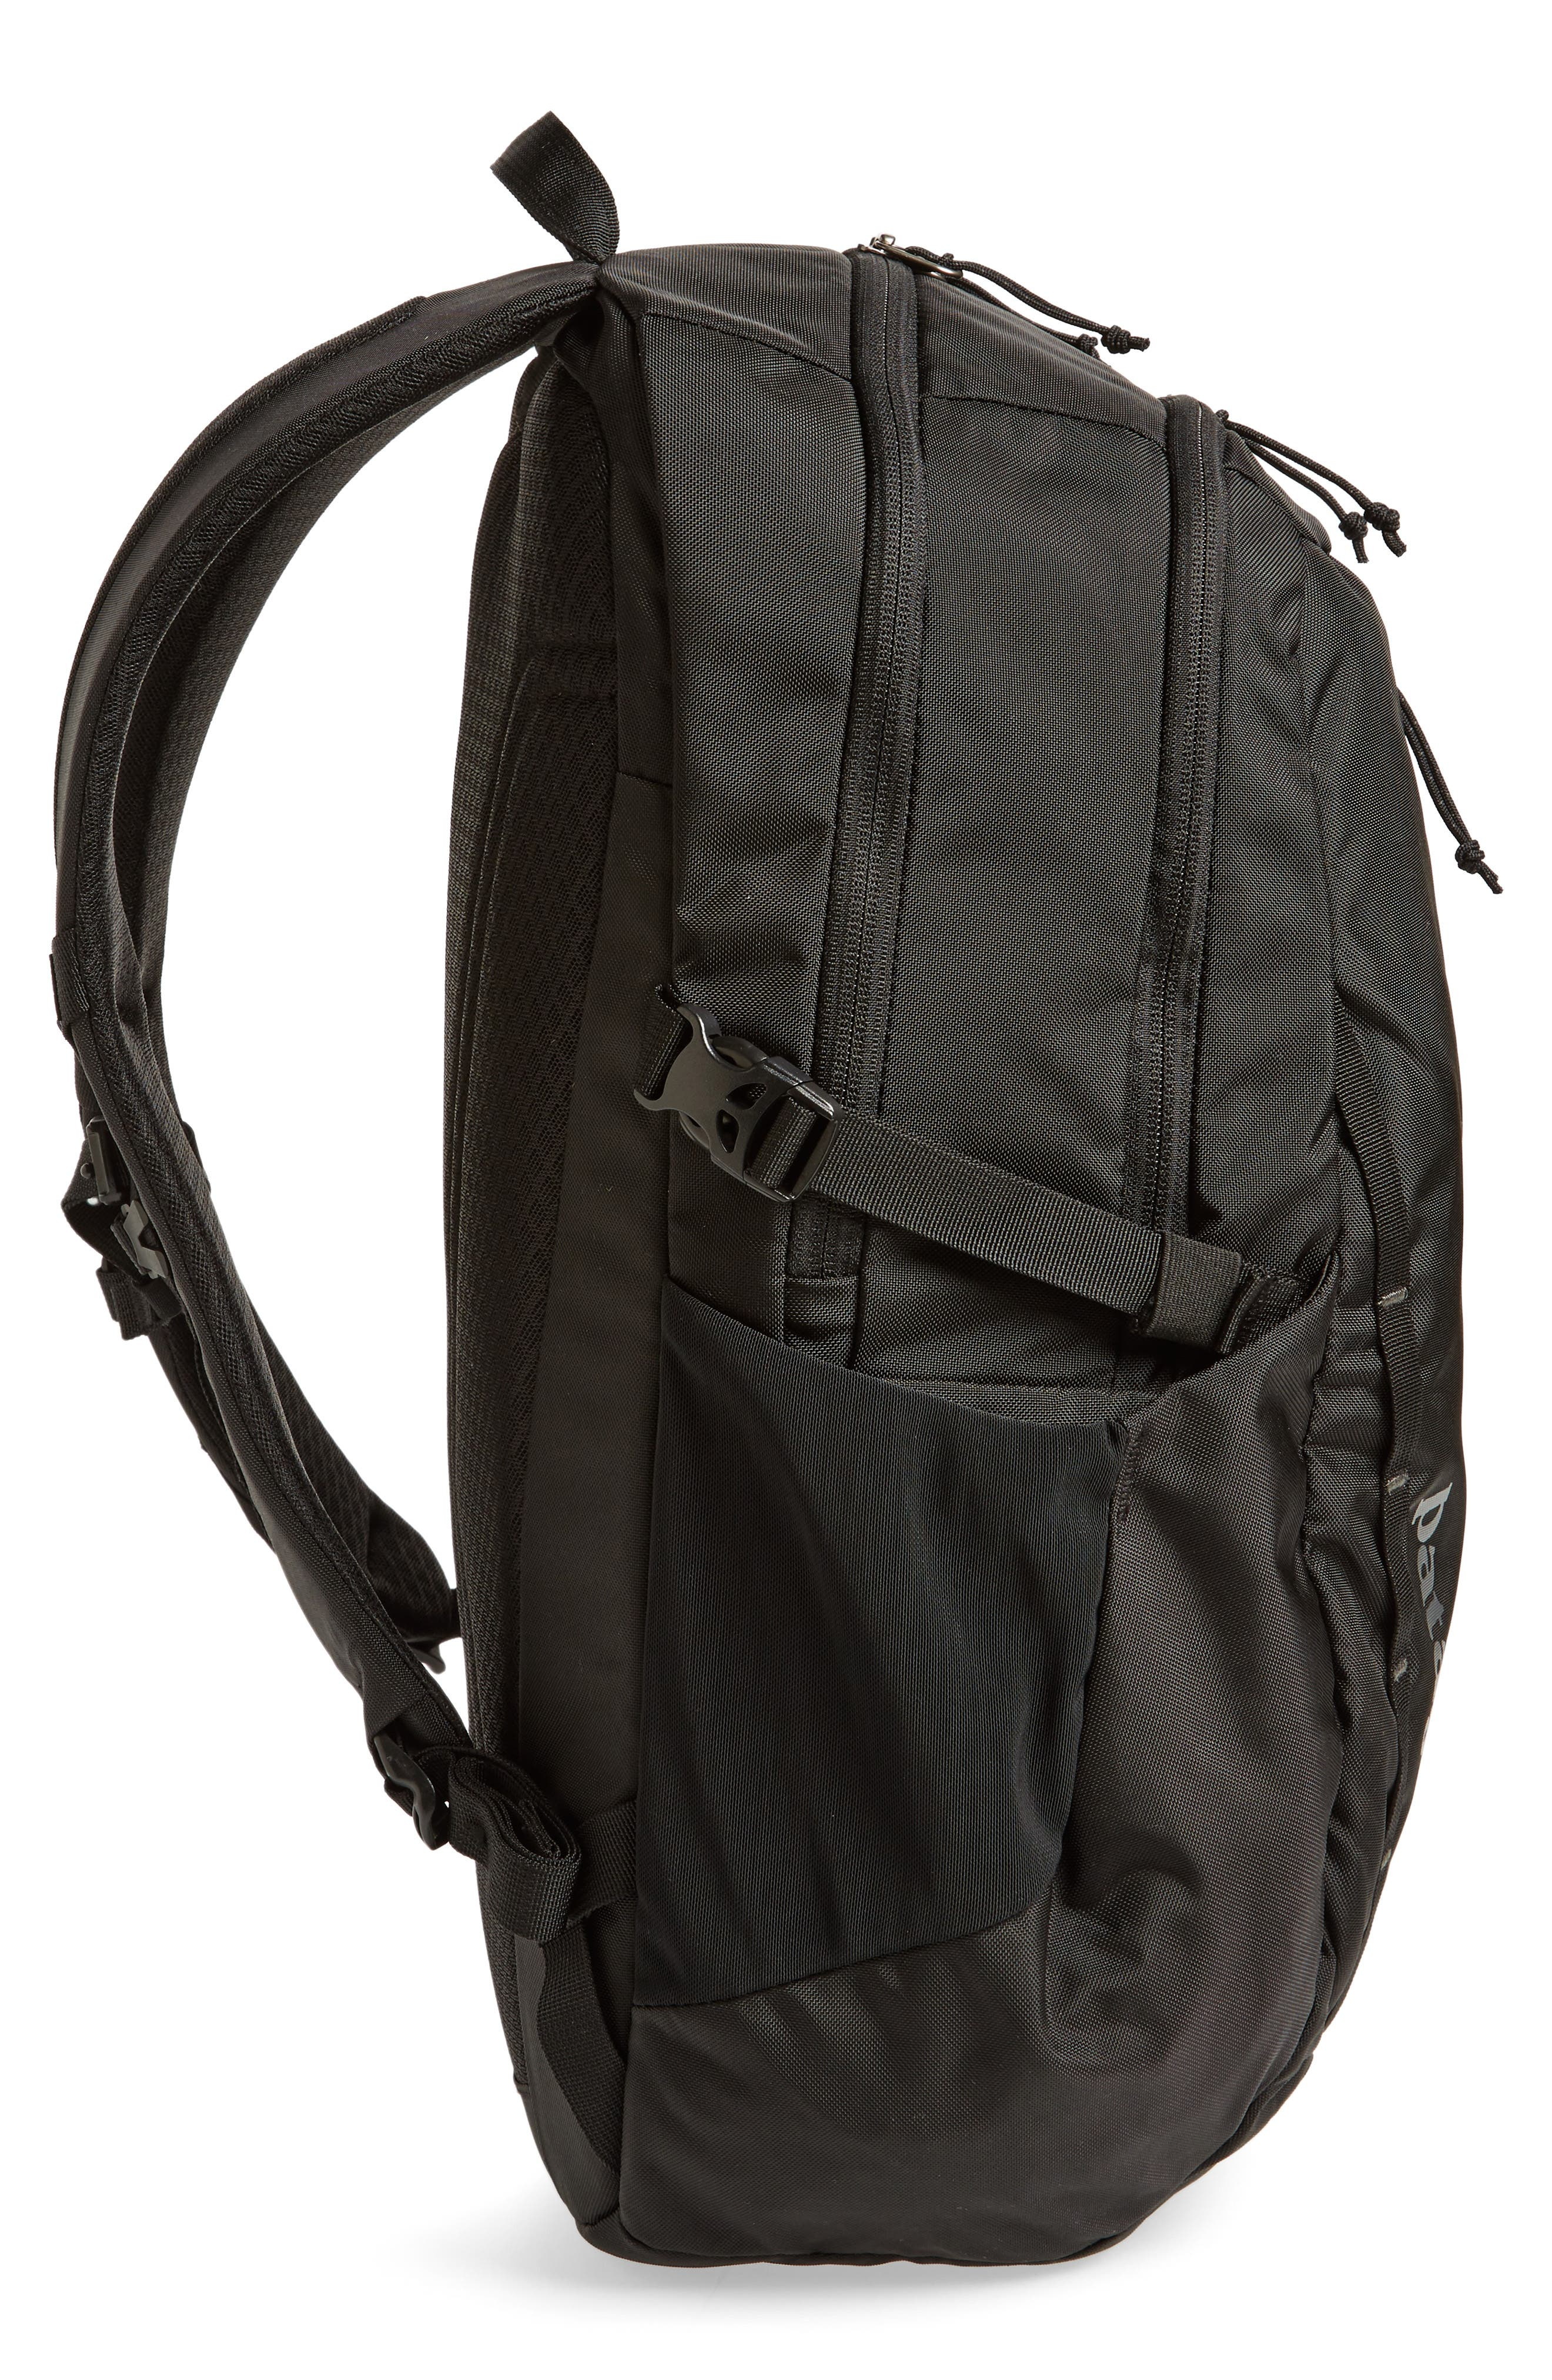 PATAGONIA, Refugio 28-Liter Backpack, Alternate thumbnail 6, color, 001